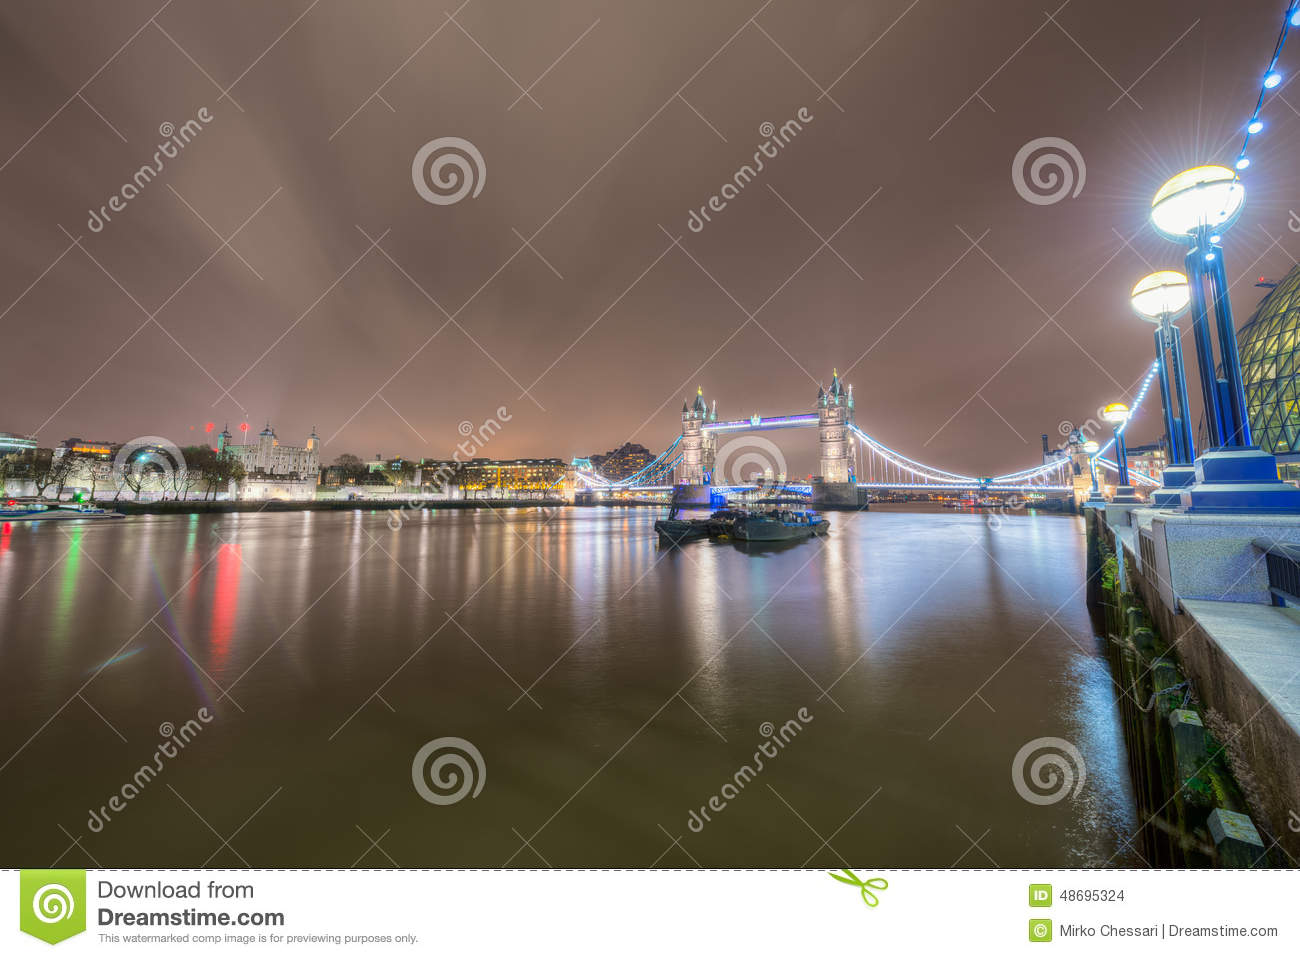 Wide view of Thames river with the Tower Bridge